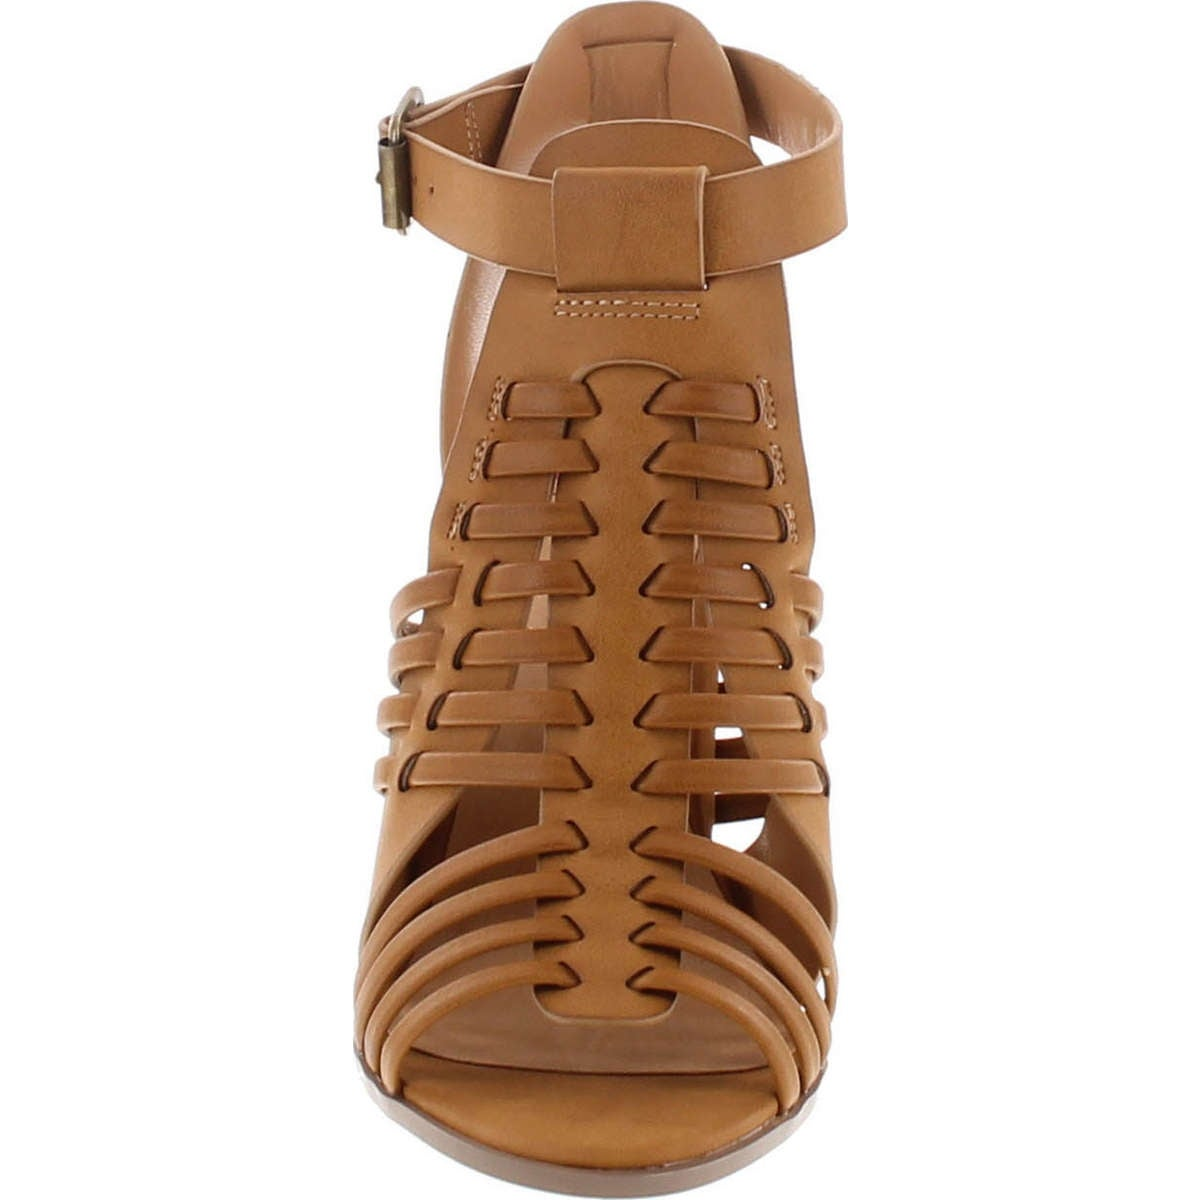 b05e4be6f4 Shop Delcious Women's Aliya Strappy Gladiator Open Toe Stacked Heel Sandal  - Free Shipping On Orders Over $45 - Overstock - 14756617